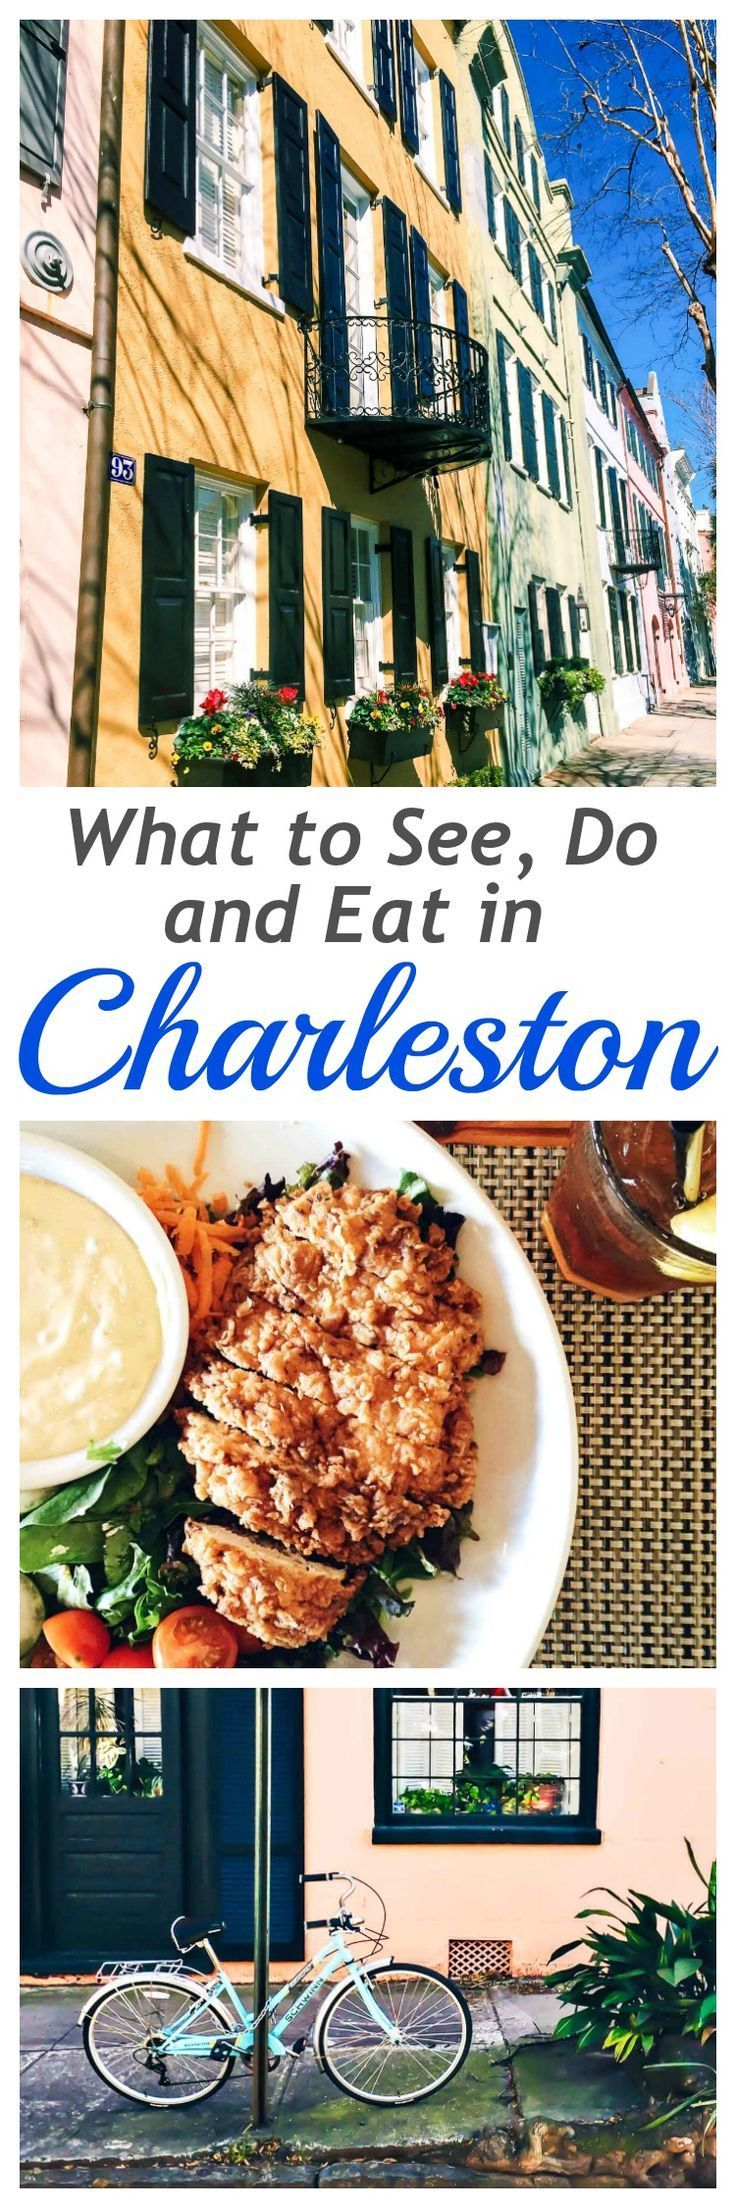 What to See do and Eat in Charleston, South Carolina. Things to do, where to stay, and best restaurants! http://www.wellplated.com /wellplated/